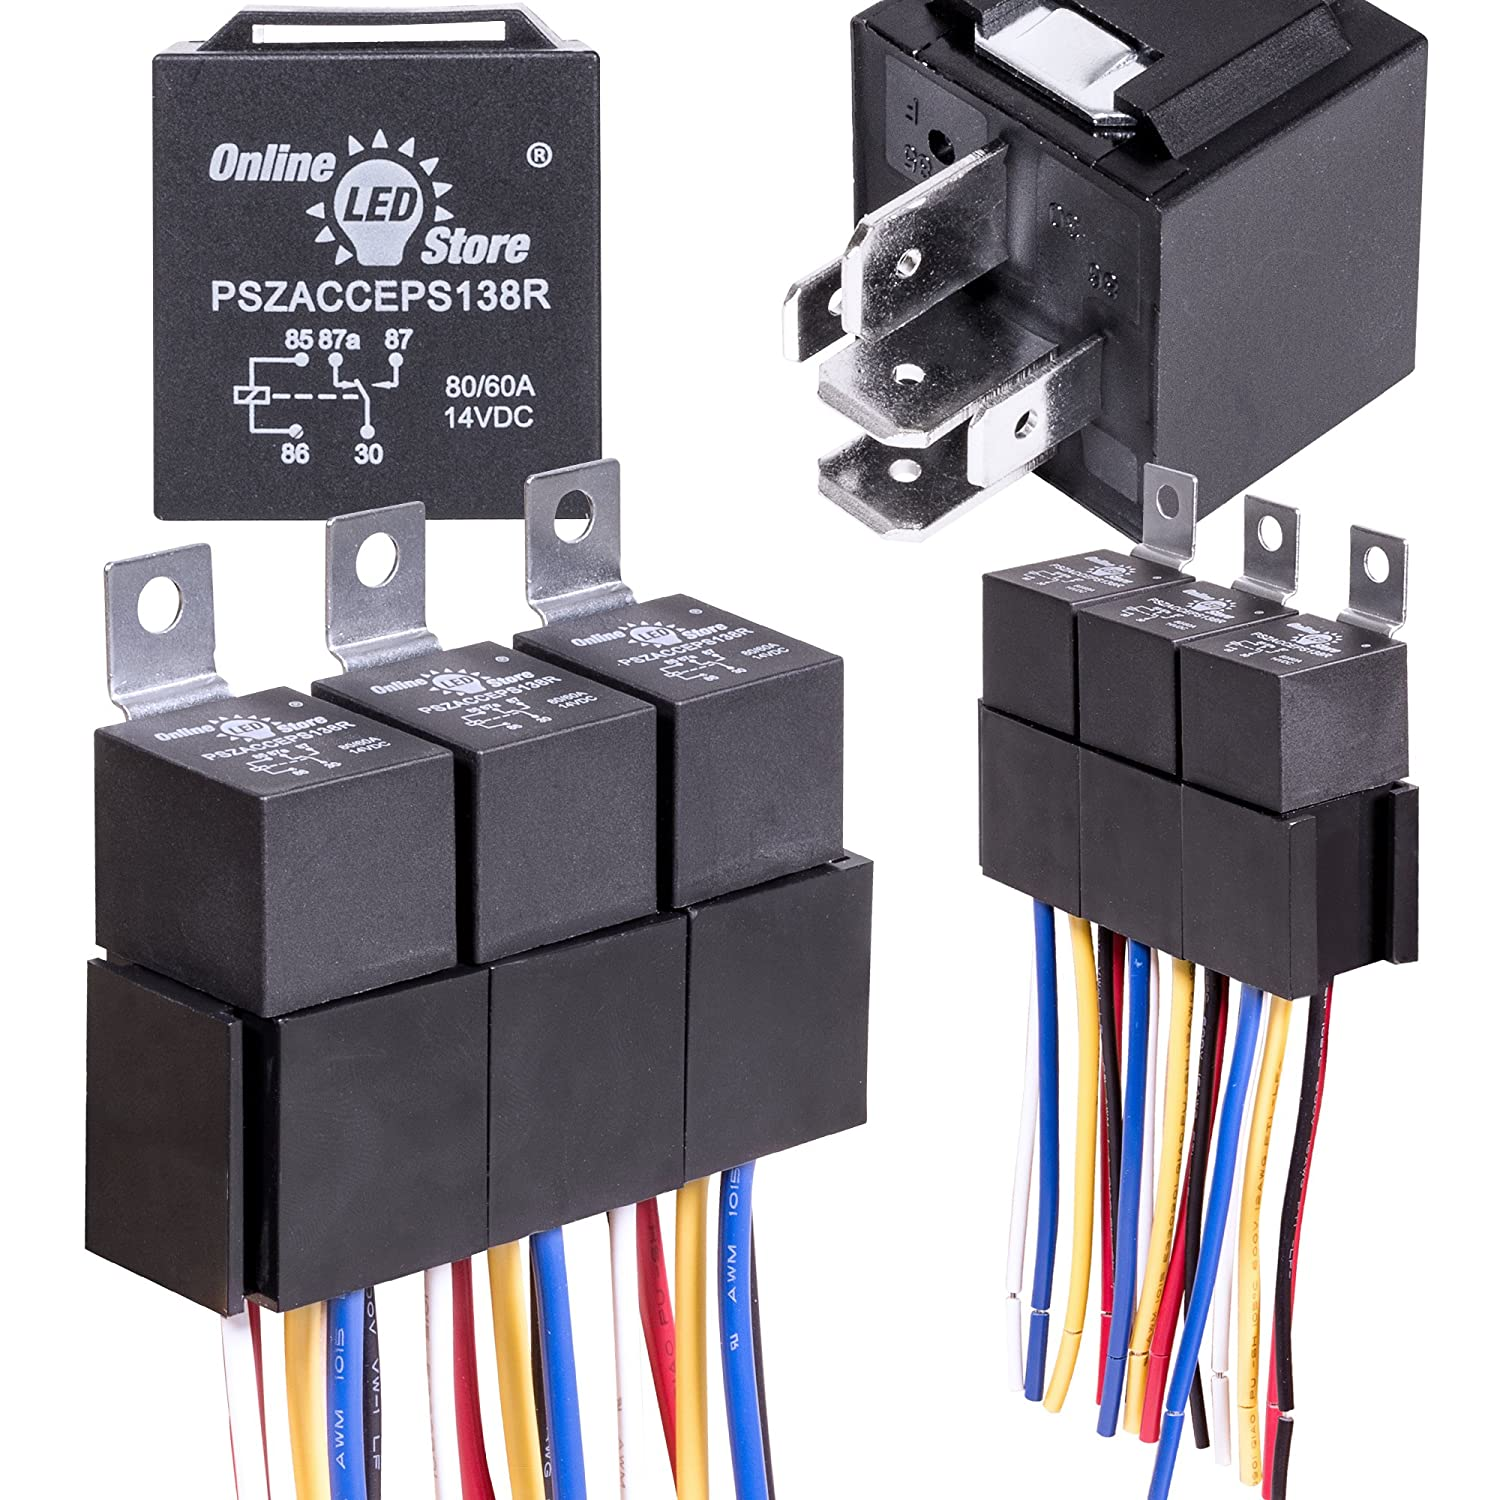 Online Led Store 5 Pack 12v 60 80 Amp Relay Switch 24v Pin Bosch Harness Set Heavy Duty Spdt Automotive Relays 12 Awg Hot Wires